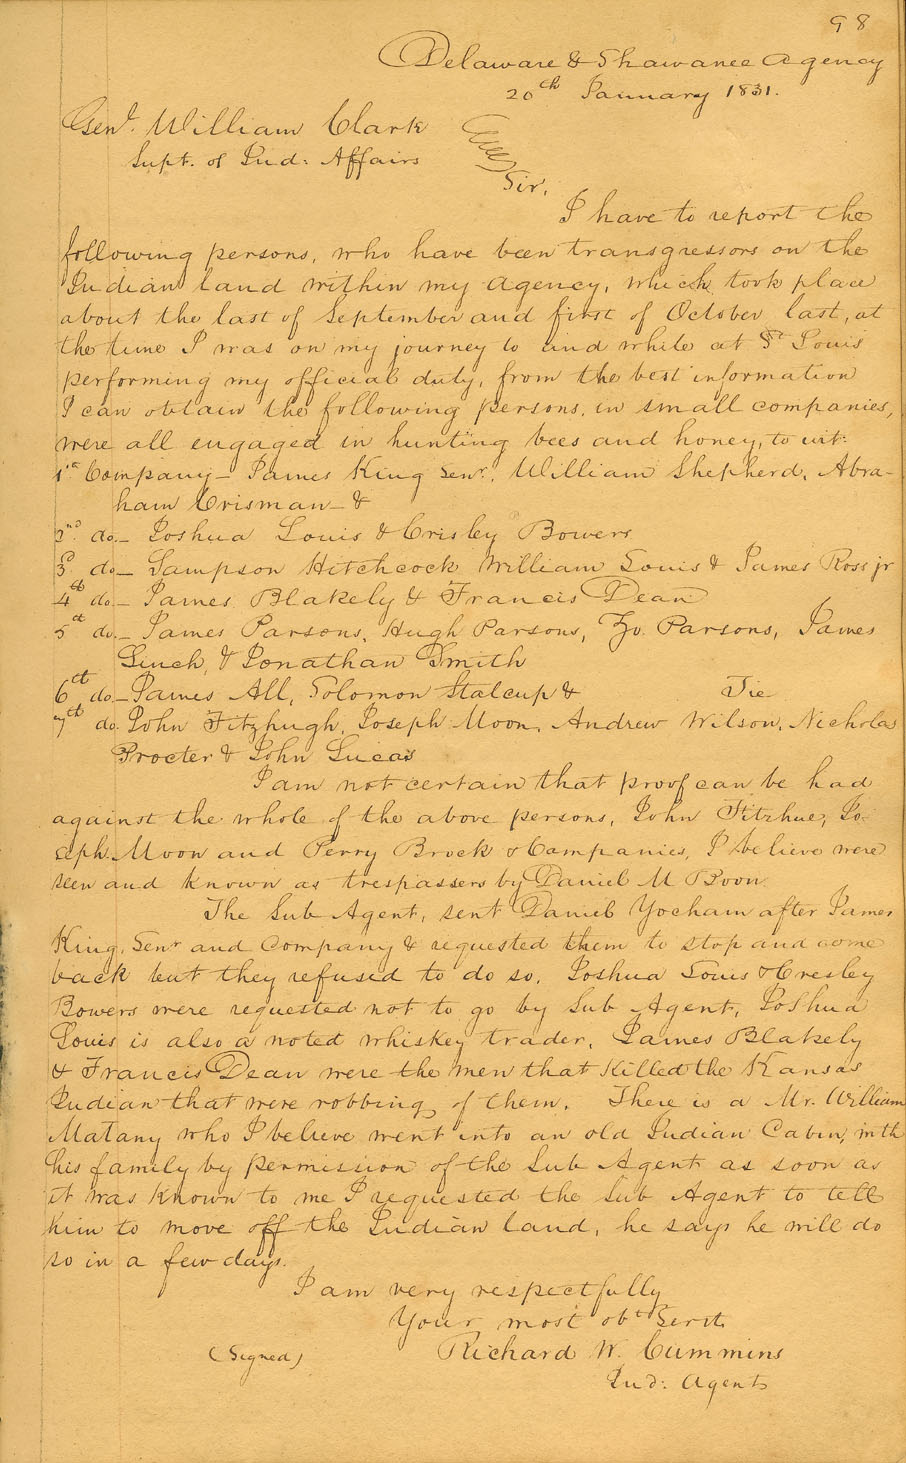 An example of a letter from the William Clark papers